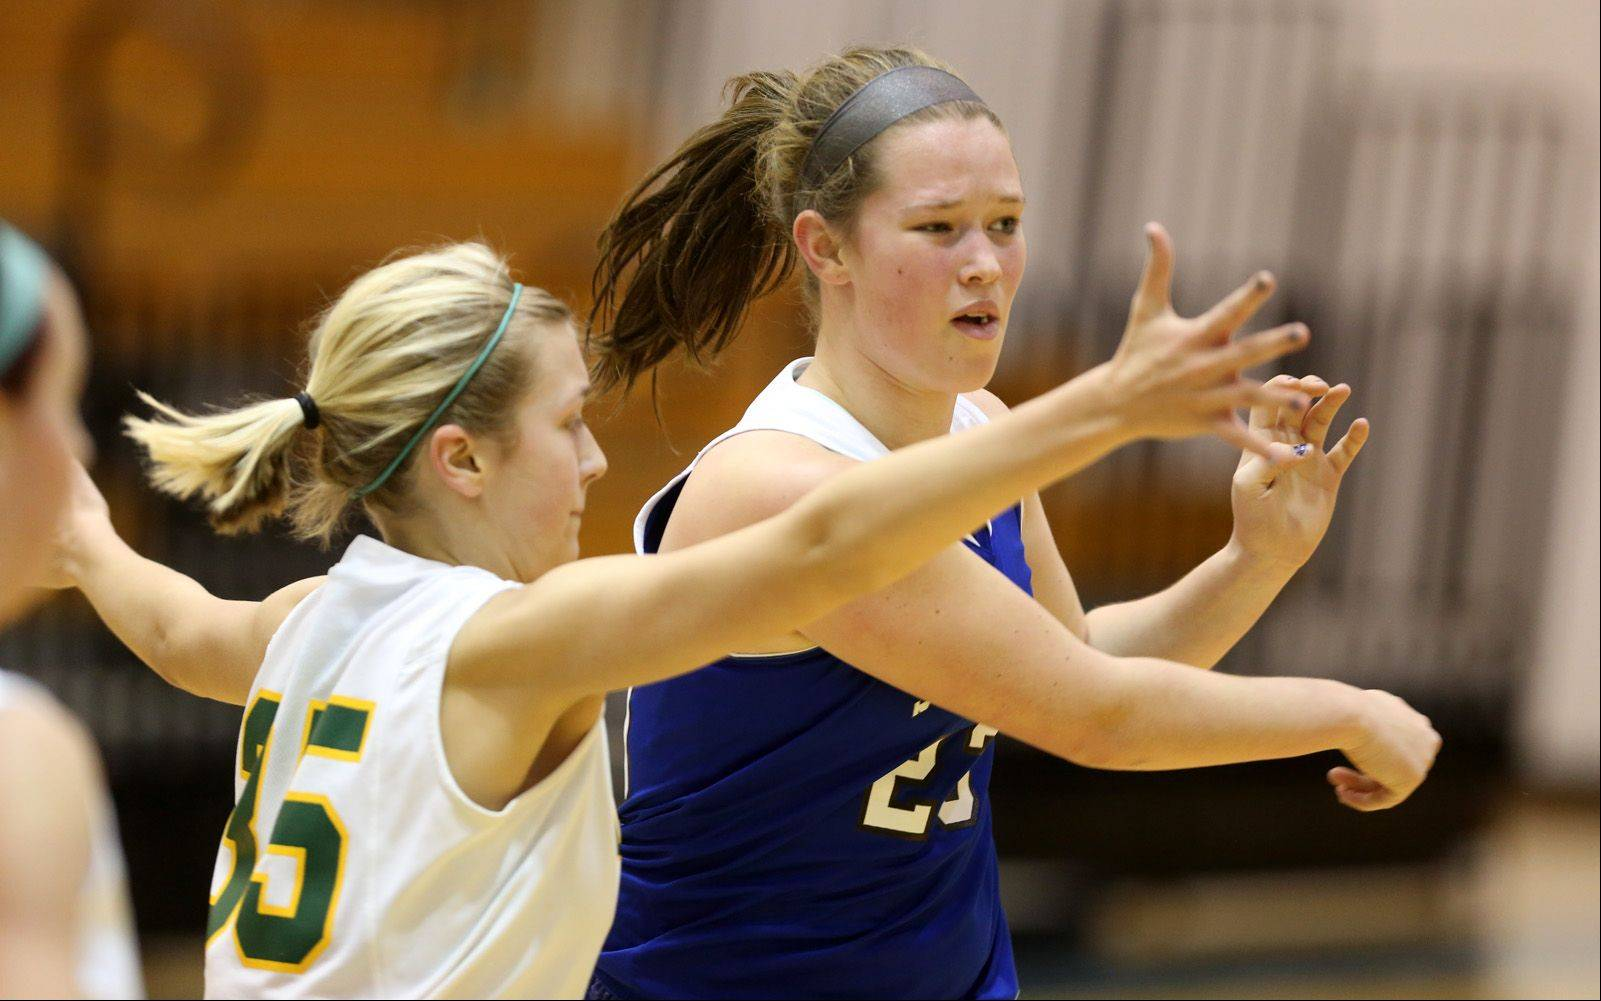 Images from the St. Francis vs. Coal City girls basketball game on Friday, Dec. 27, 2013.